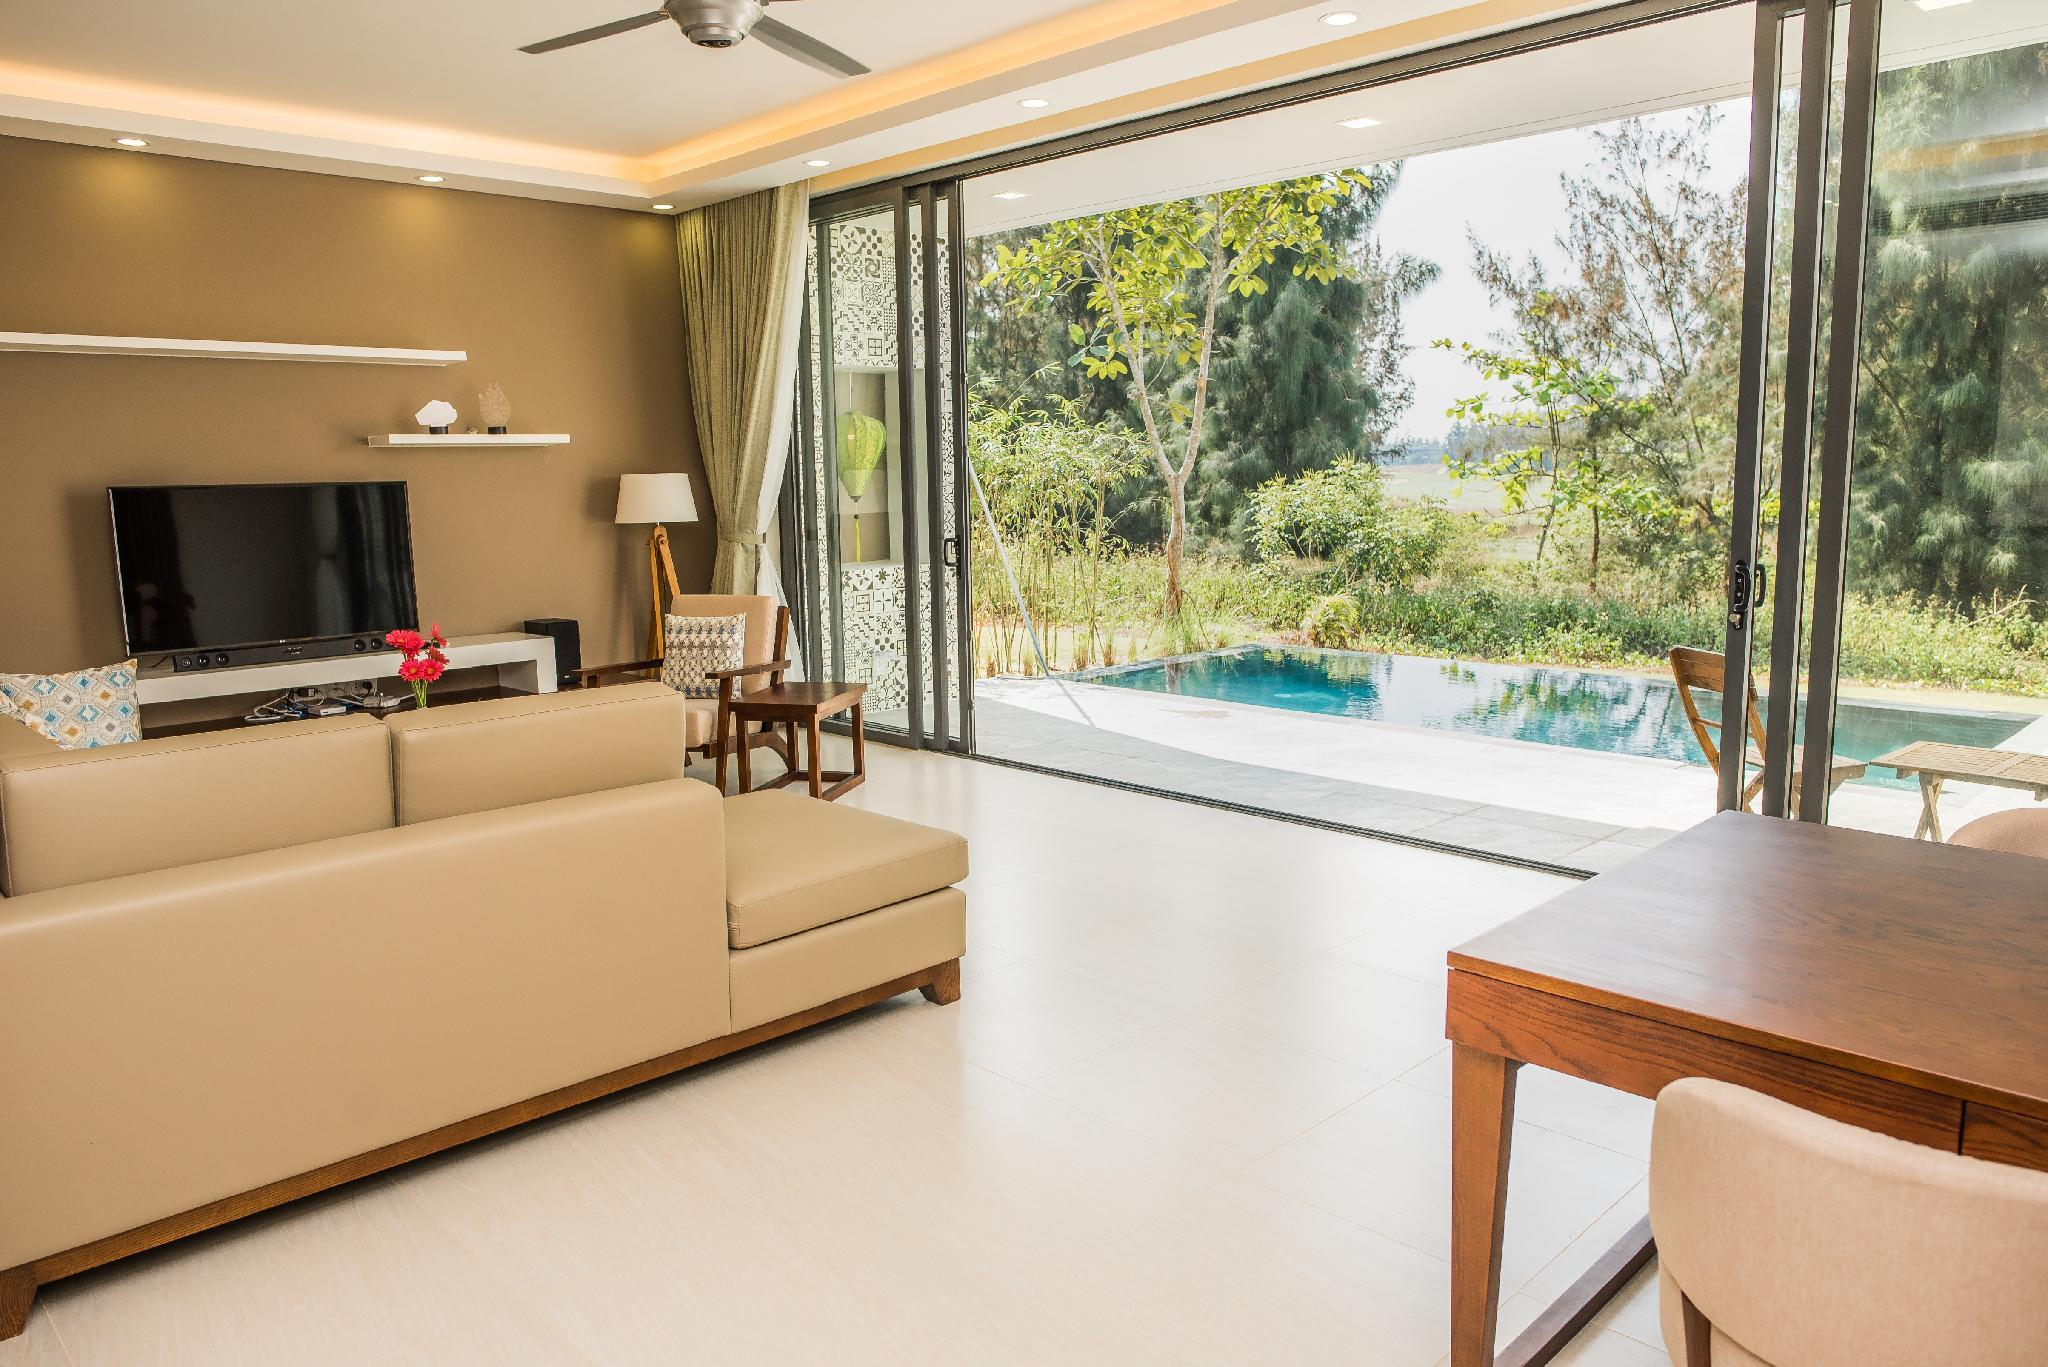 New 4BR Luxury Villa With Extra Features The Point